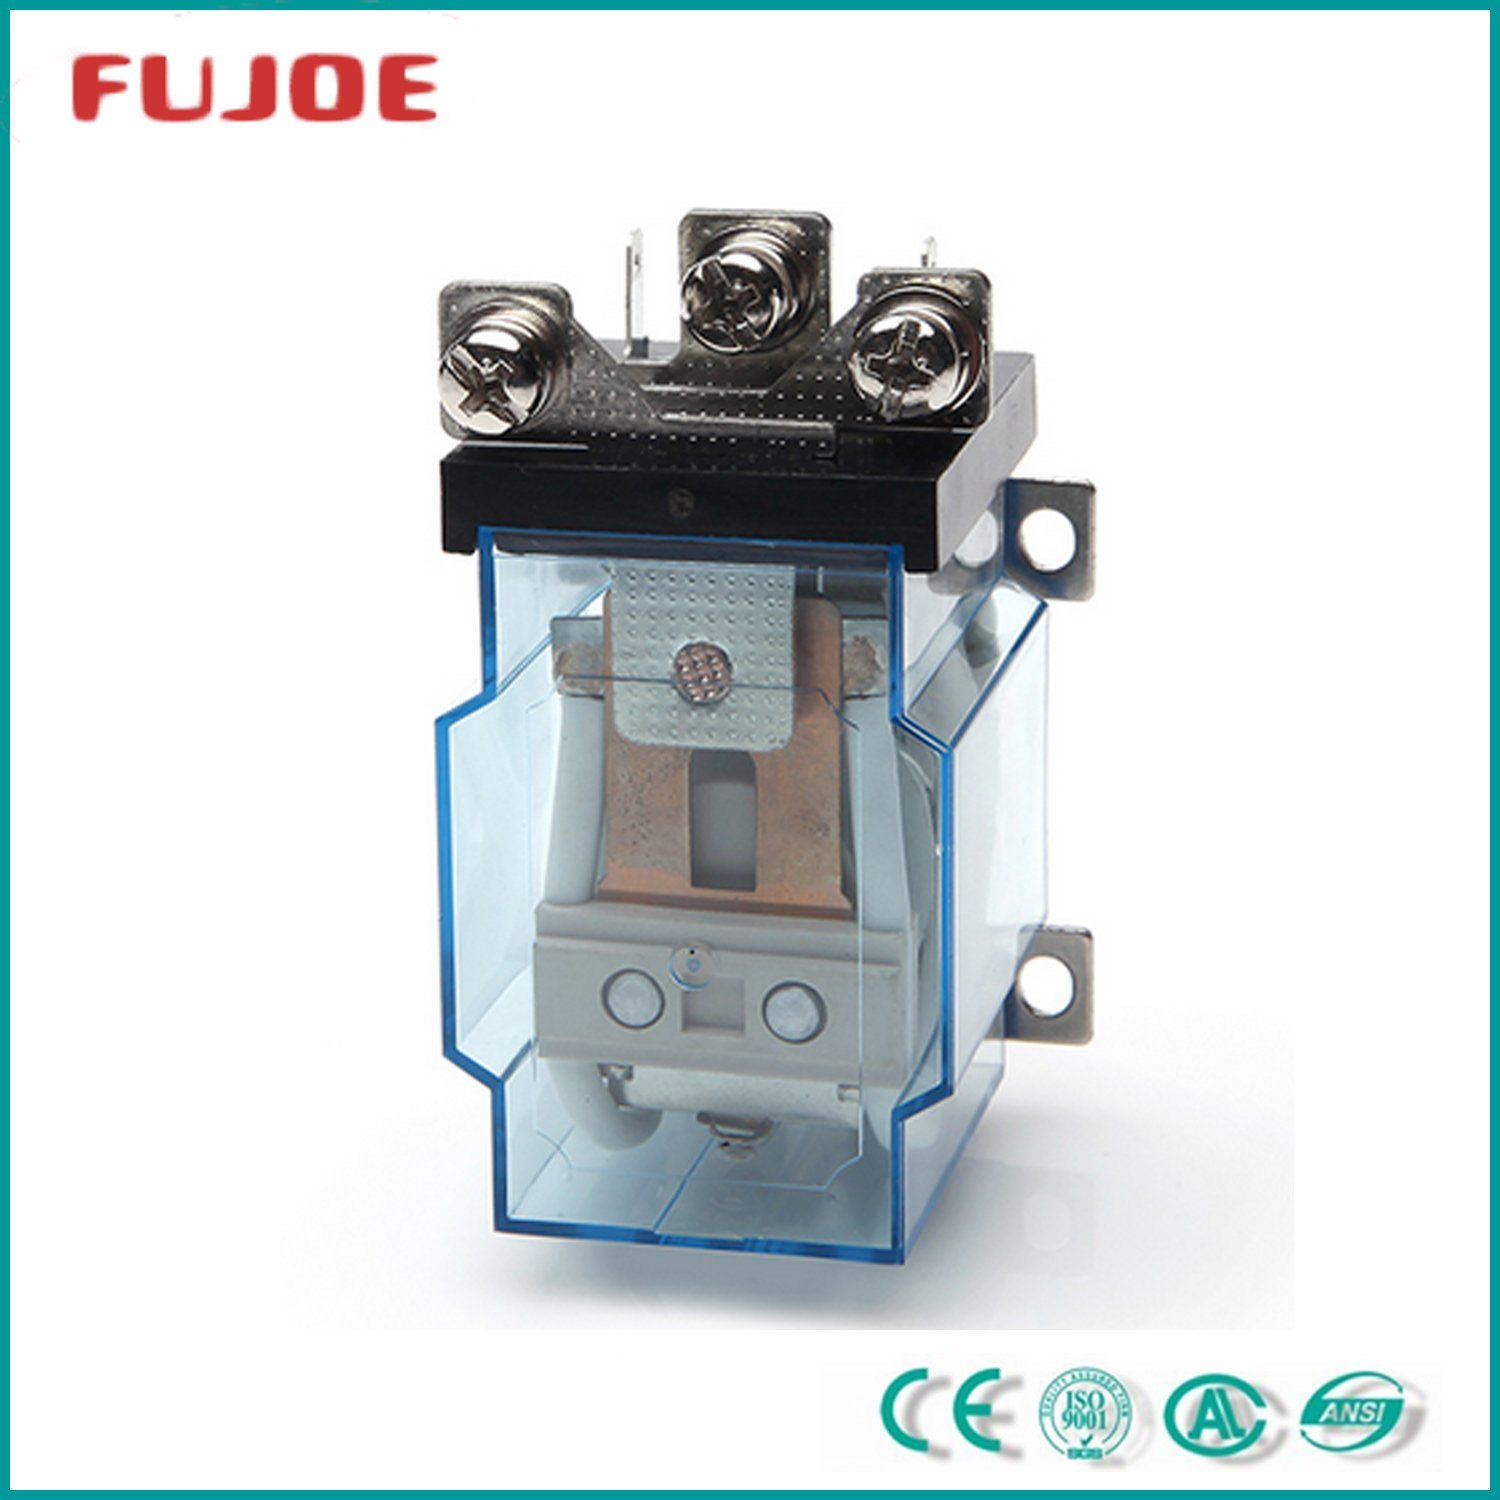 Jqx-60f Big Power Relay 60 Ampere Power Relay DC220V